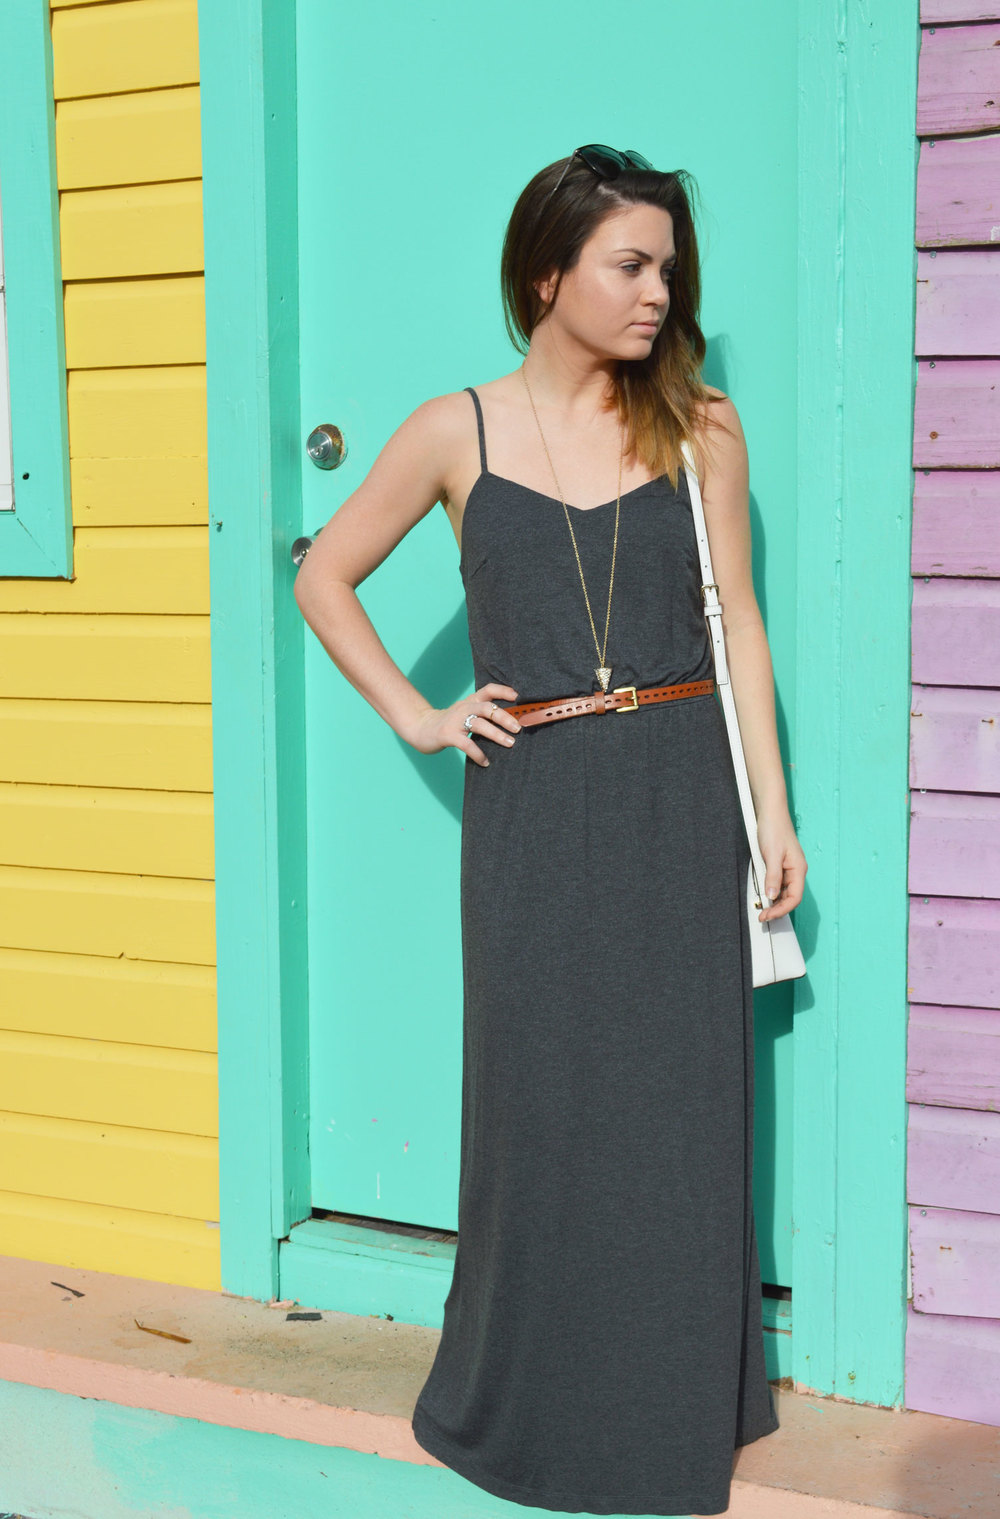 GAP-Sundress-Maxi-Nassau-Bahamas-Style-Fashion-Lifestyle-Blogger-BaubleBar-Necklace.jpeg